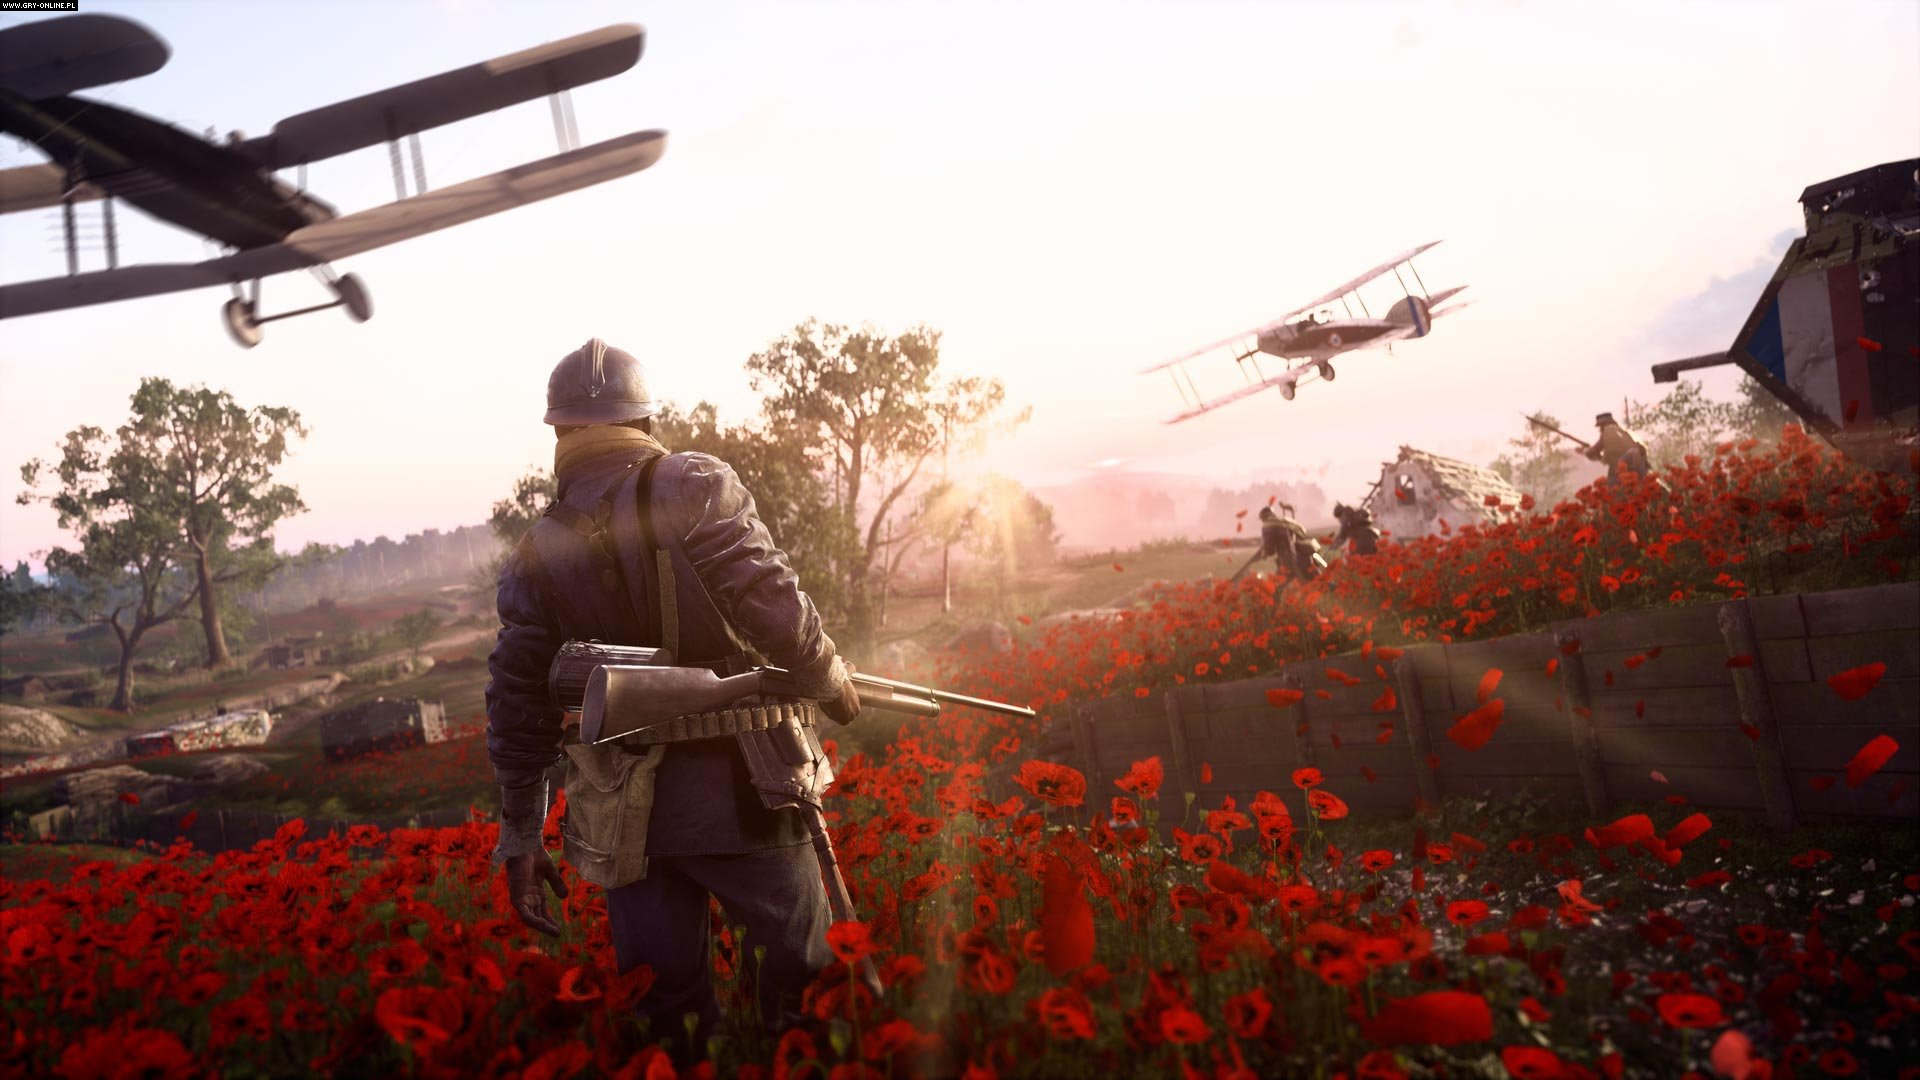 Battlefield 1: They Shall Not Pass PC, XONE, PS4 Games Image 1/7, EA DICE / Digital Illusions CE, Electronic Arts Inc.